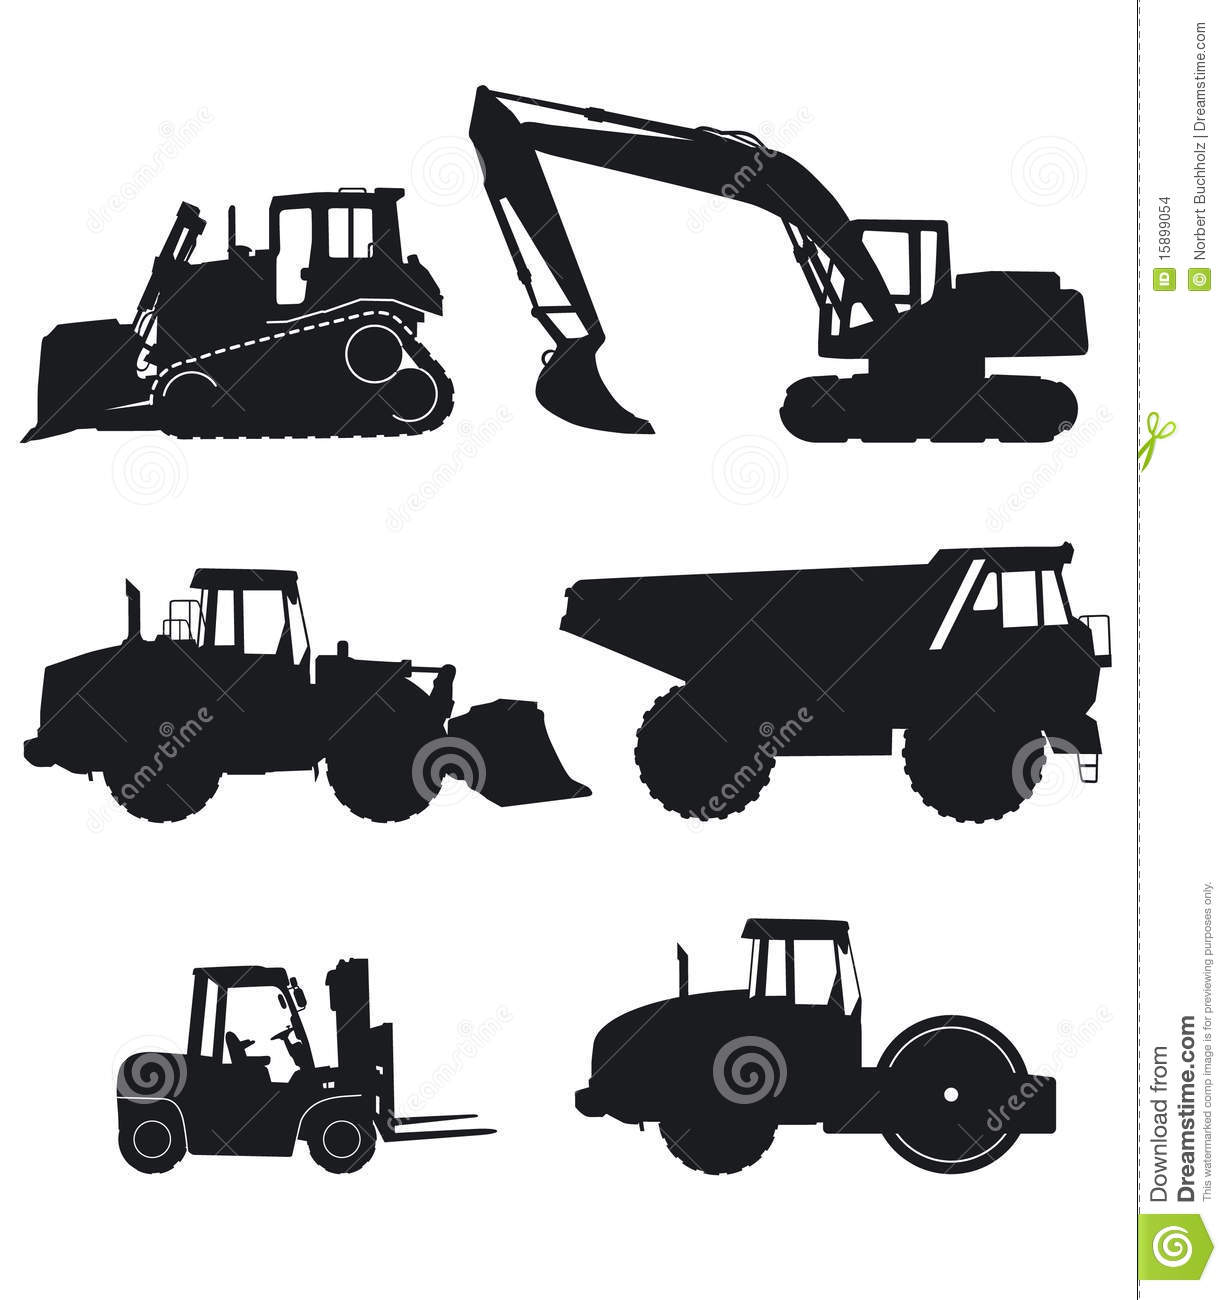 Animated Truck Pictures additionally Top 10 Instruments Of Doom furthermore Aanhanger Trailer Vehicle as well Clip Art Black And White Toy besides B000VNZTQQ. on dump truck clip art